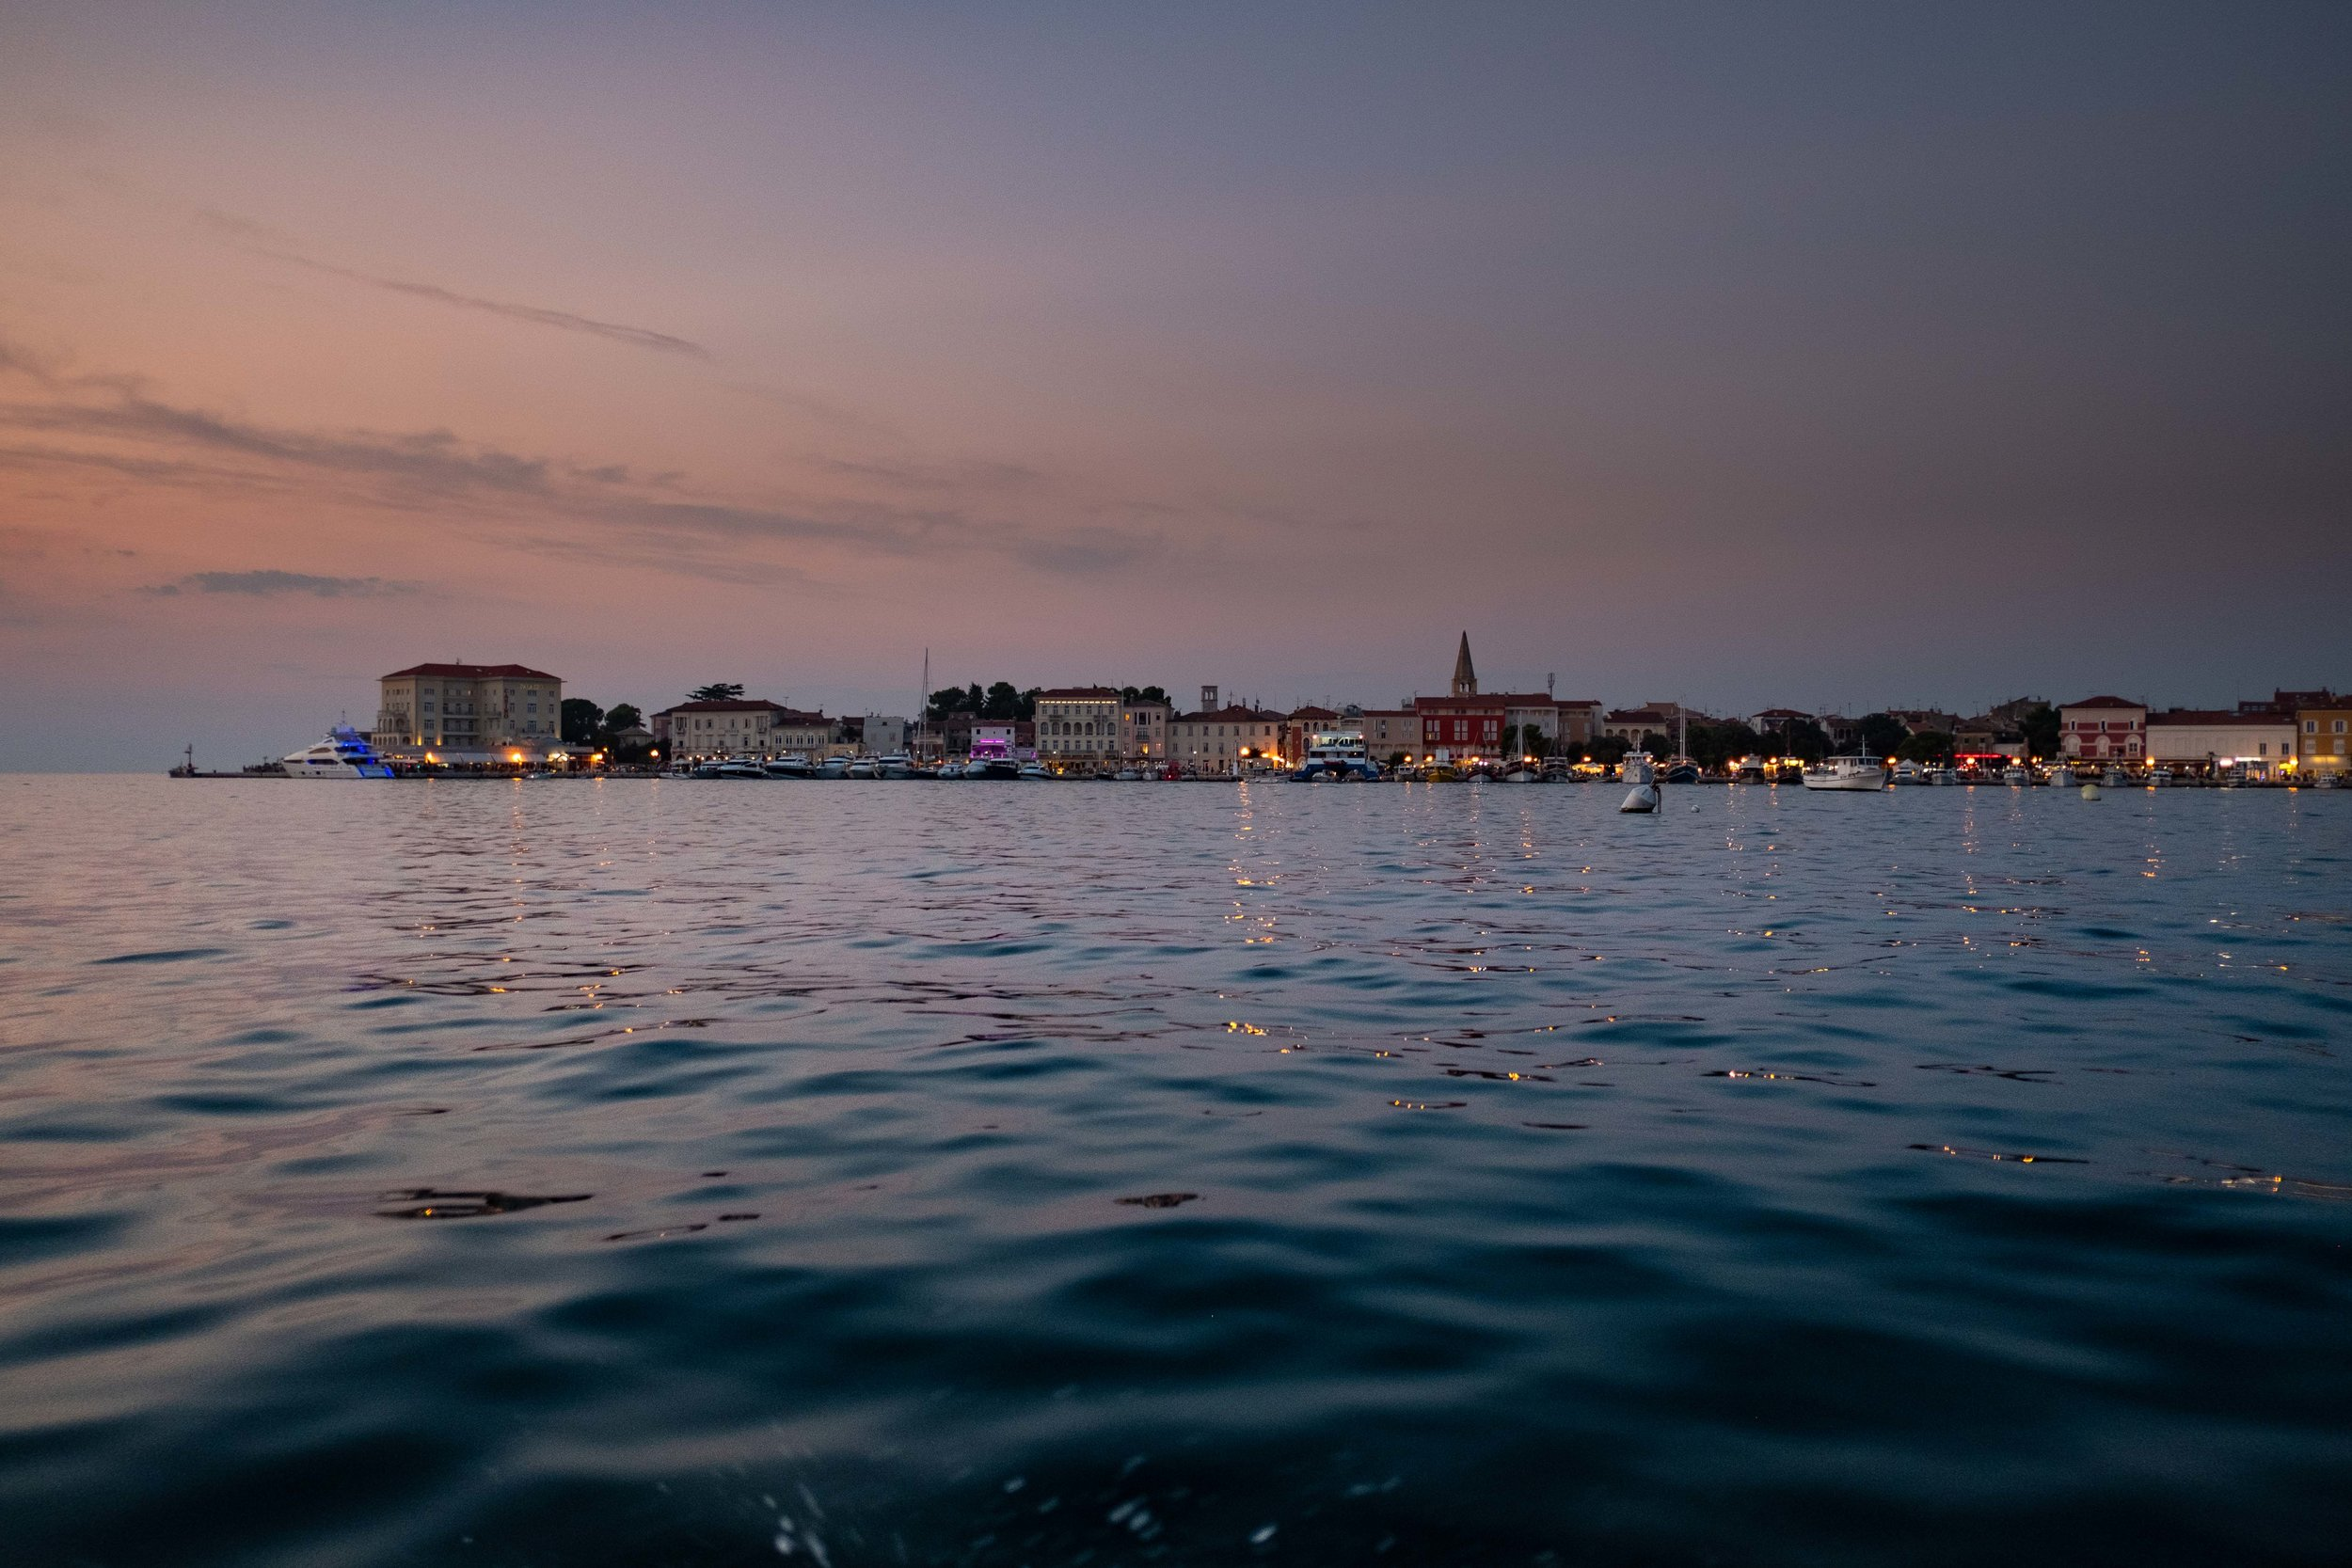 The view from the water taxi into Porec